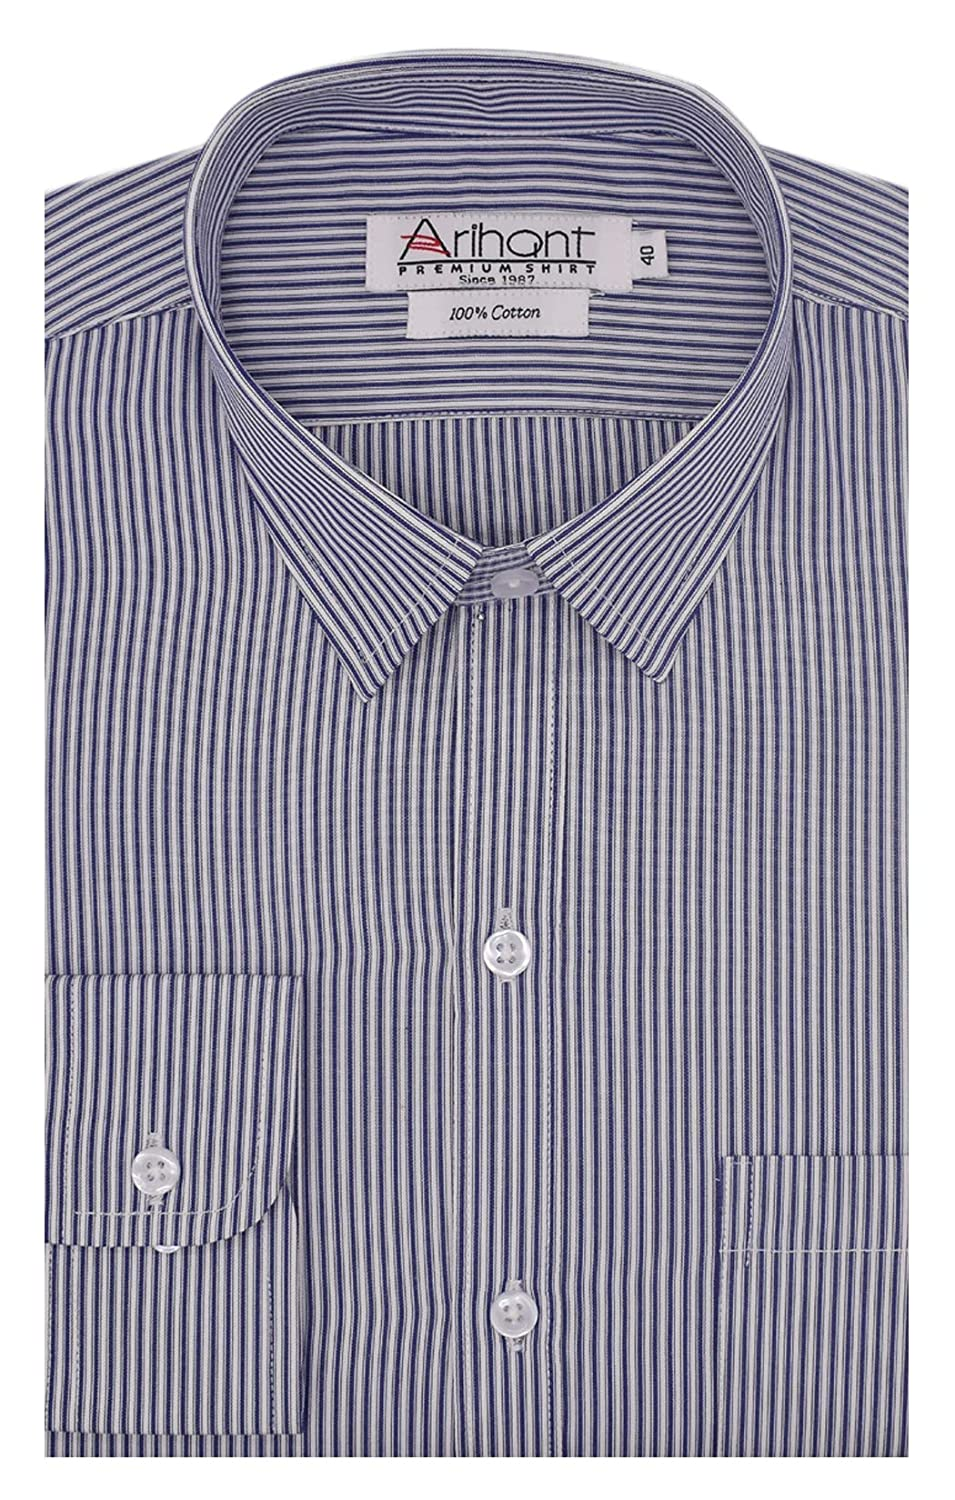 ac2e63169 Arihant Men's Striped Full Sleeves Regular Fit 100% Cotton Formal Shirts  (AR781201_Blue_44): Amazon.in: Clothing & Accessories